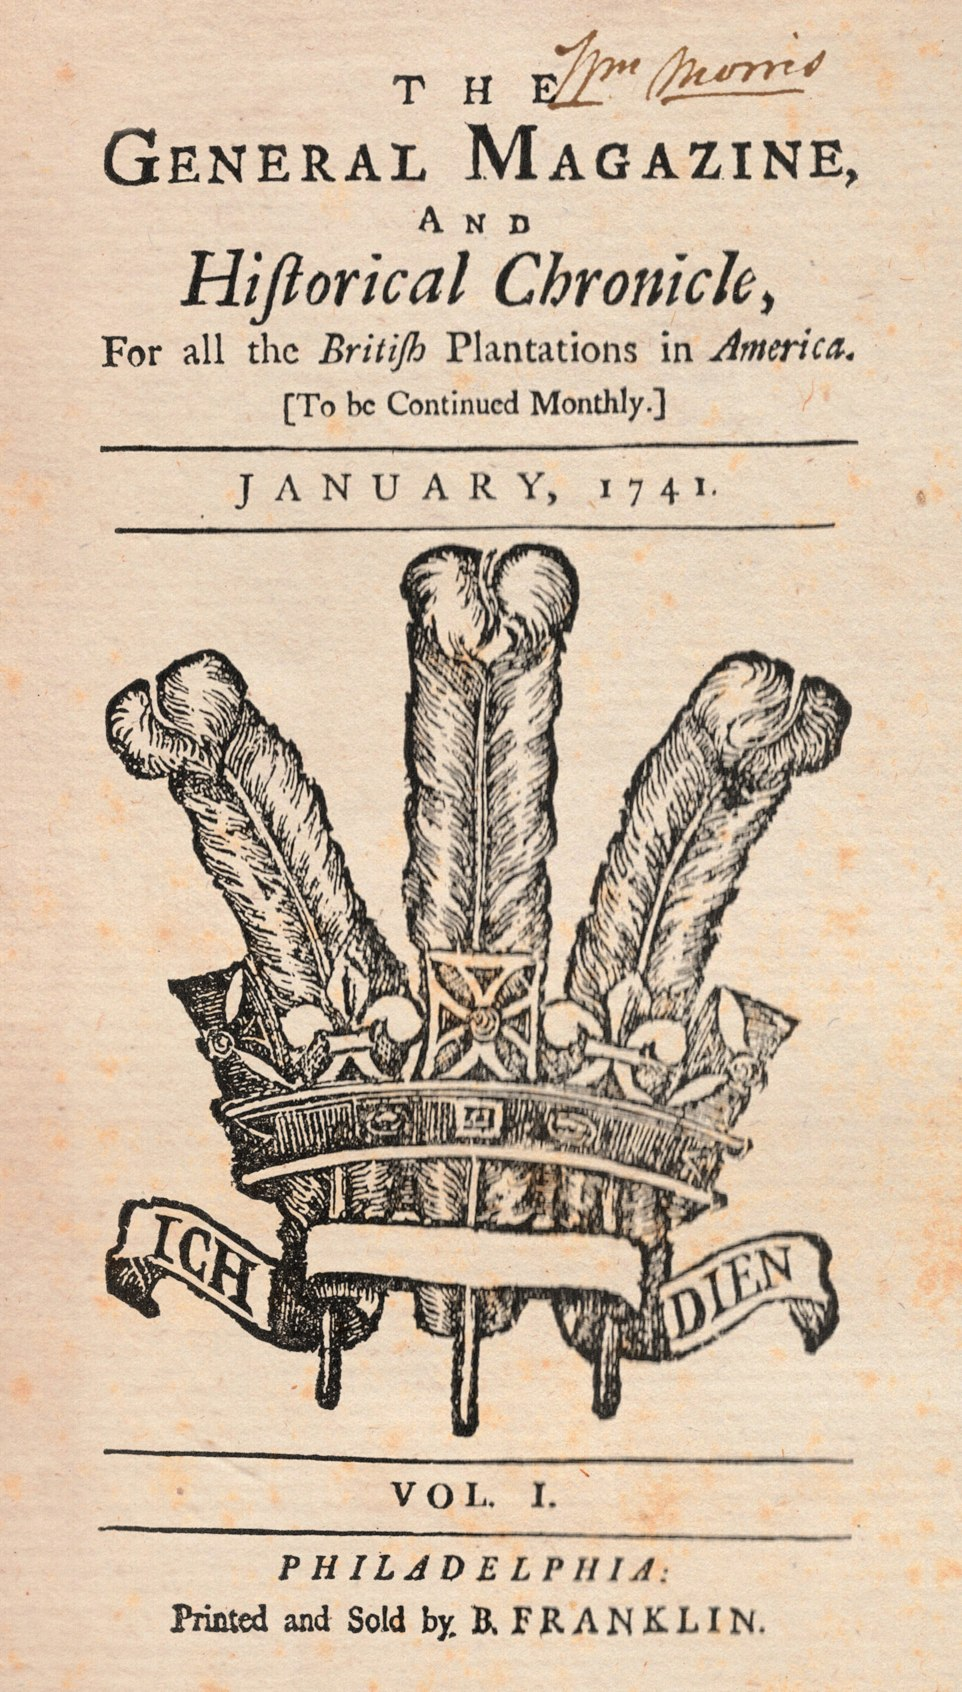 The General Magazine and Historical Chronicle Vol 1, January, 1741